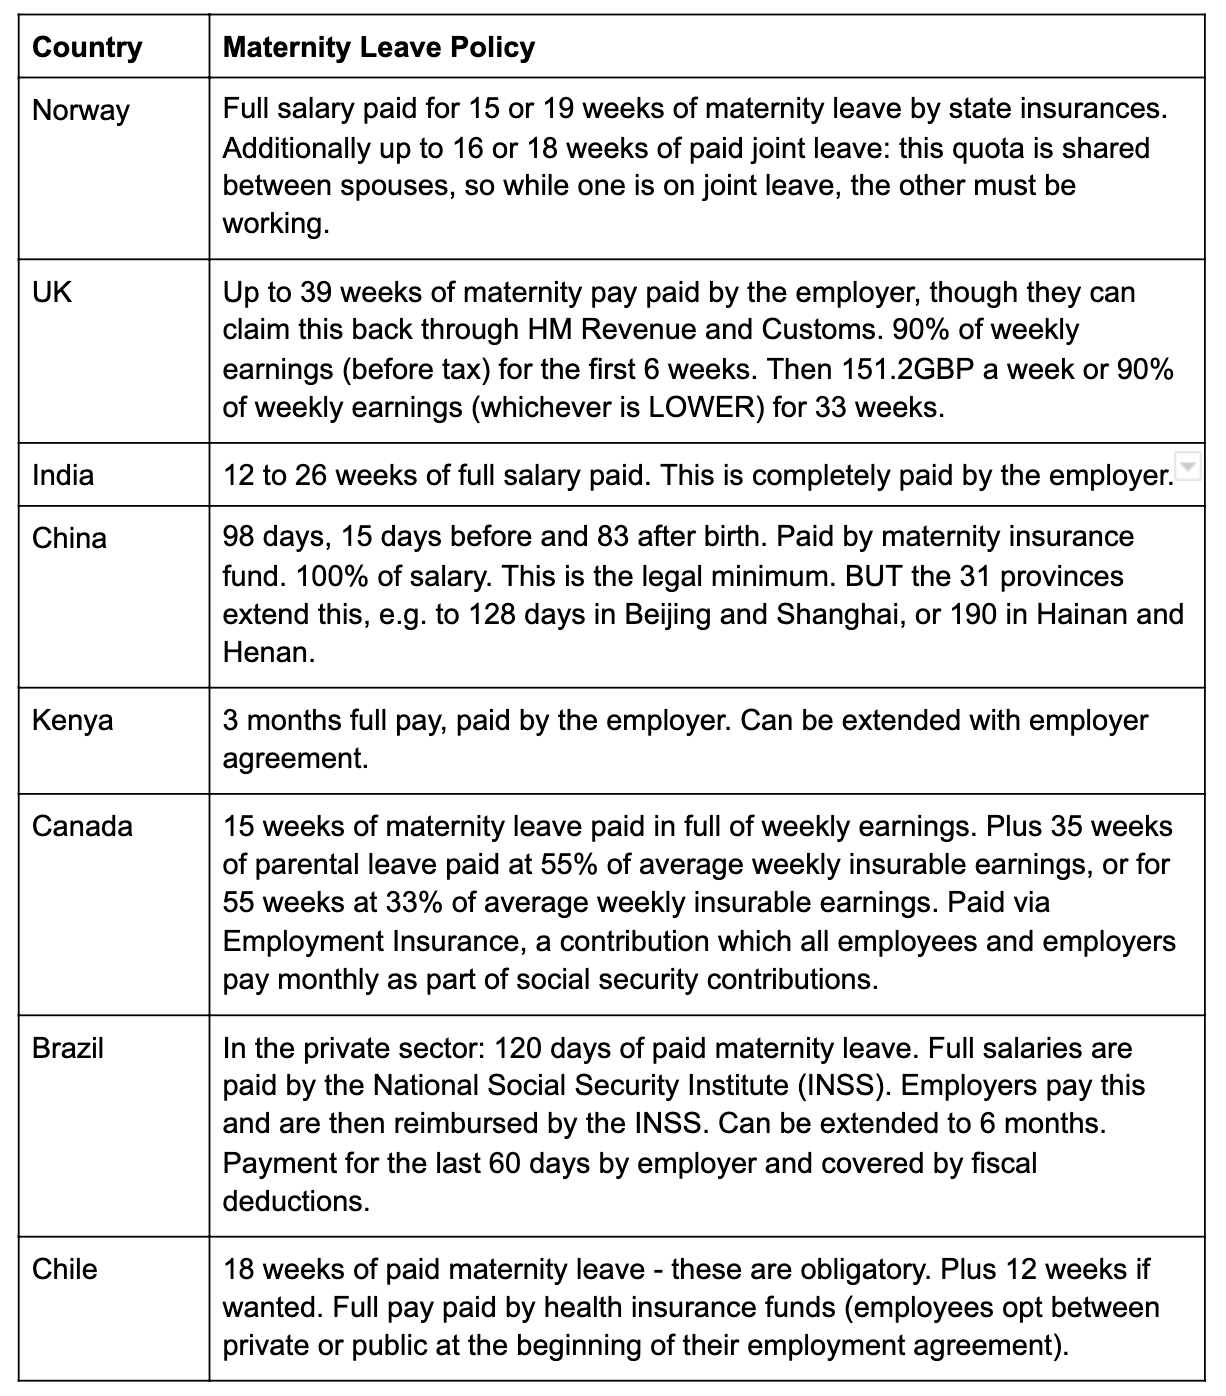 Table of information about maternity leave policy in Norway, UK, India, China and other countries